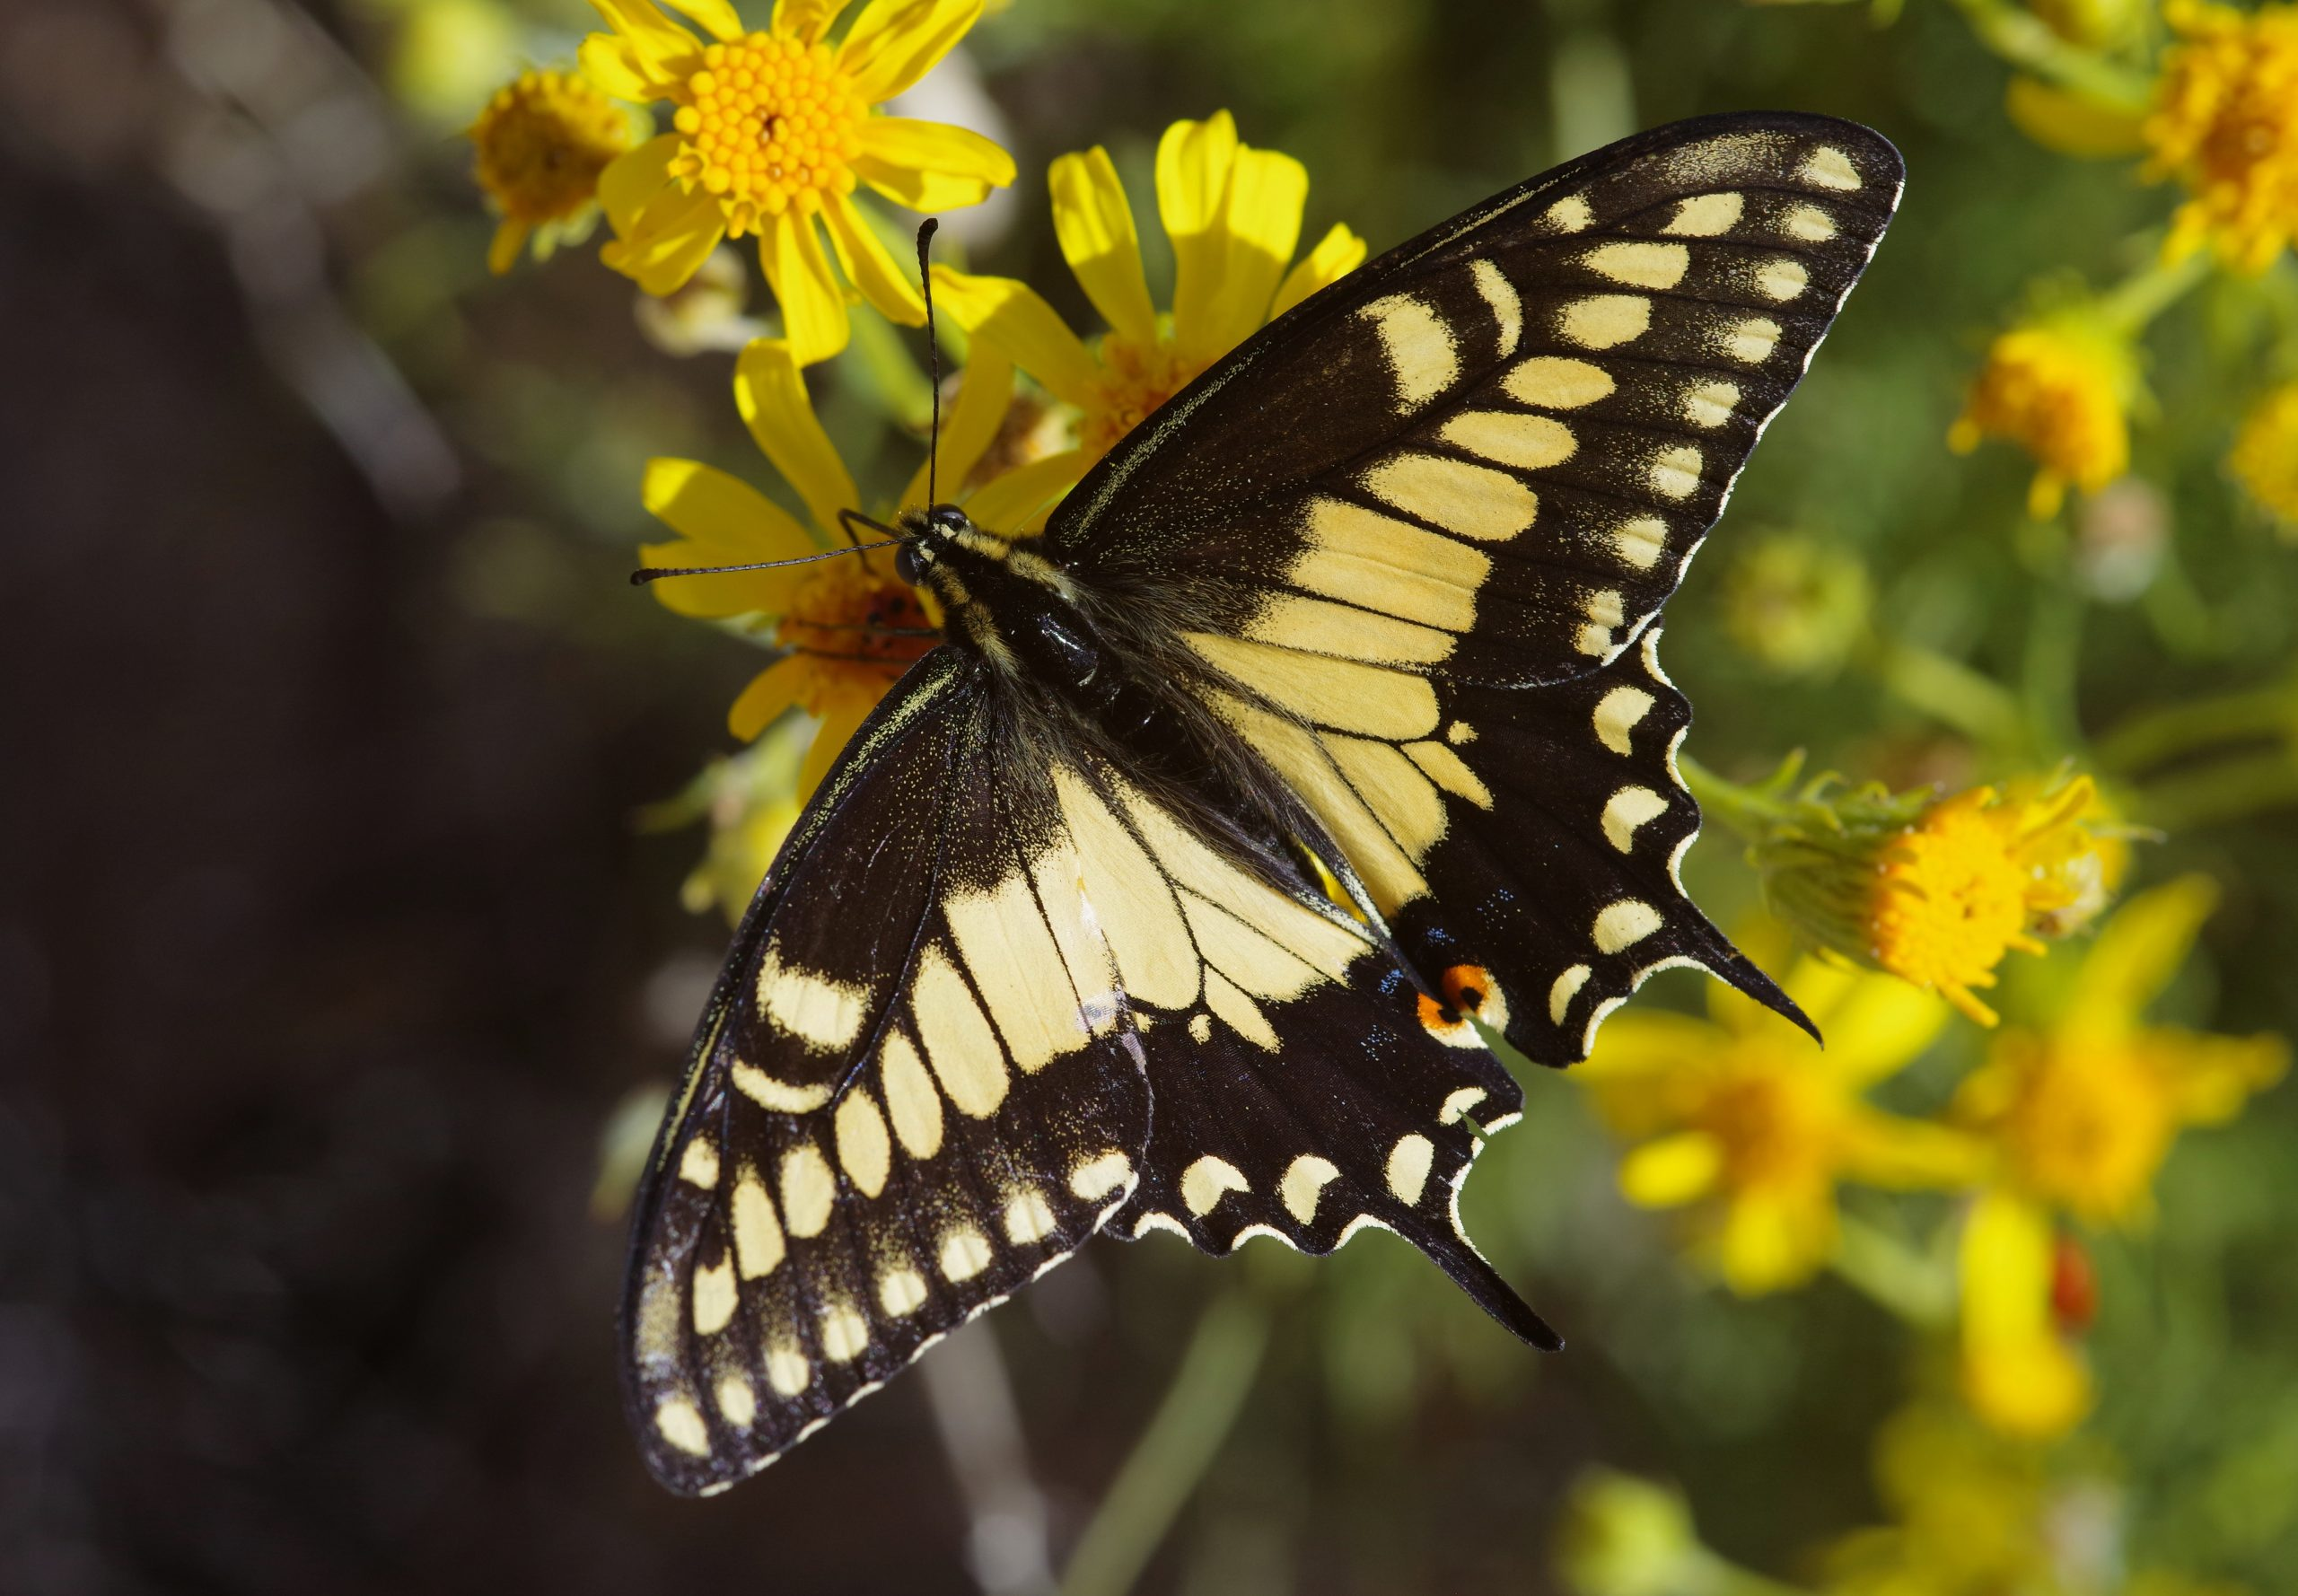 OLD WORLD SWALLOWTAIL, Papilio machaon. Photo by Paul De Ley.